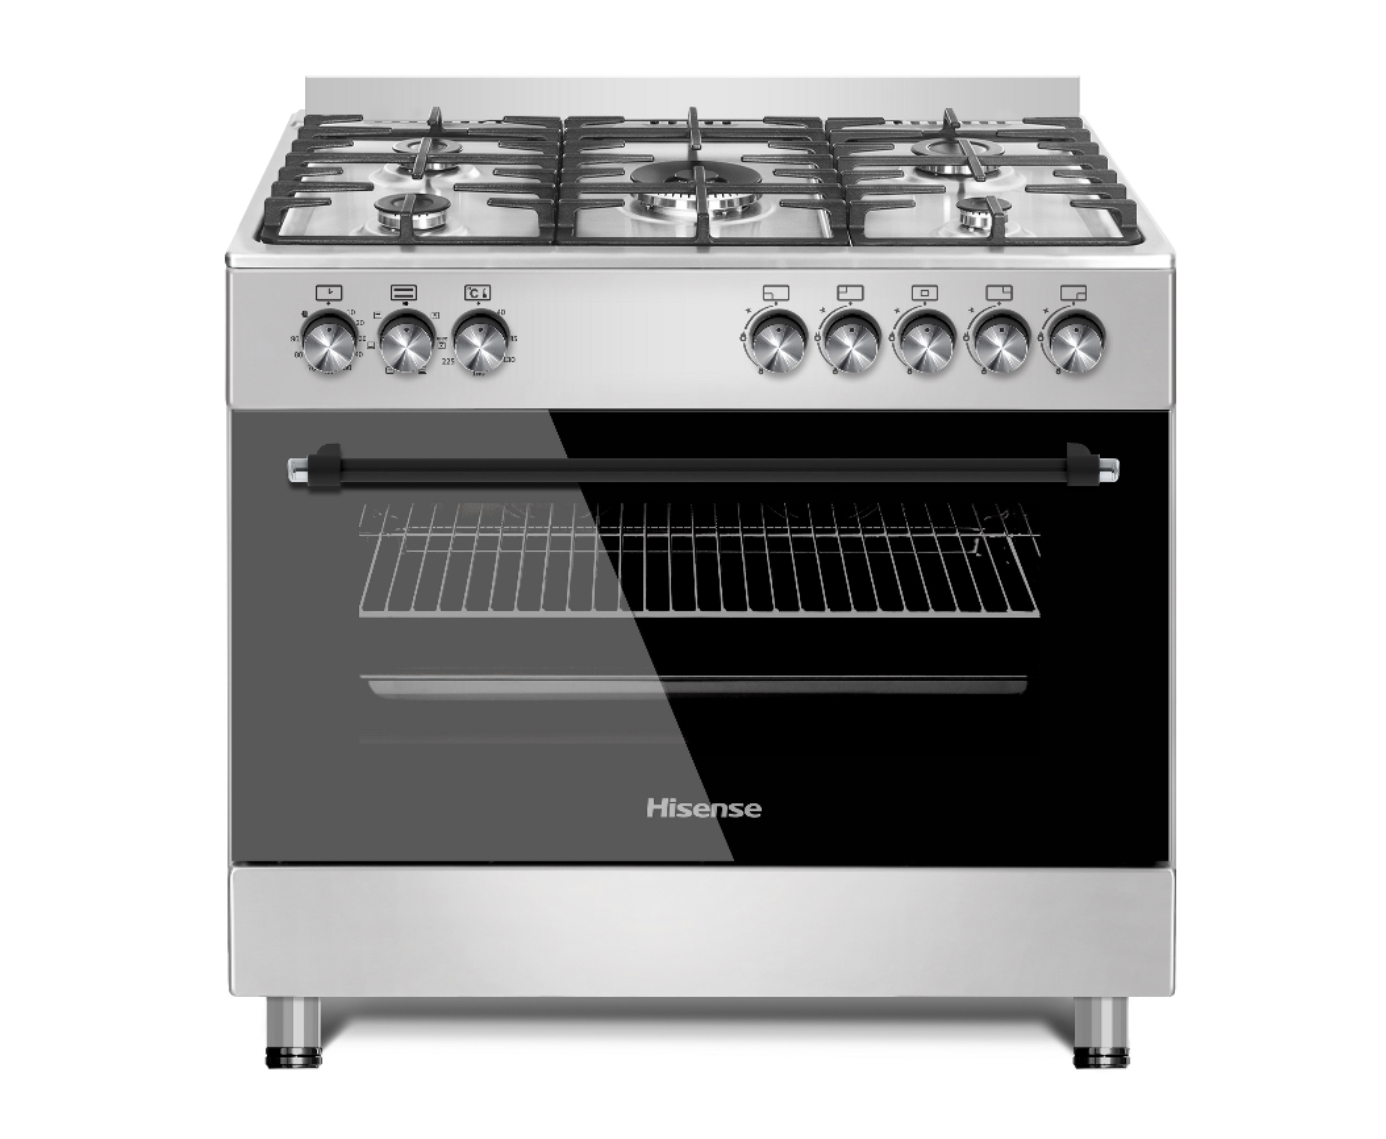 HISENSE 90CM GAS ELECTRIC STAINLESS STEEL STOVE TANZANIA (HFS905GES)